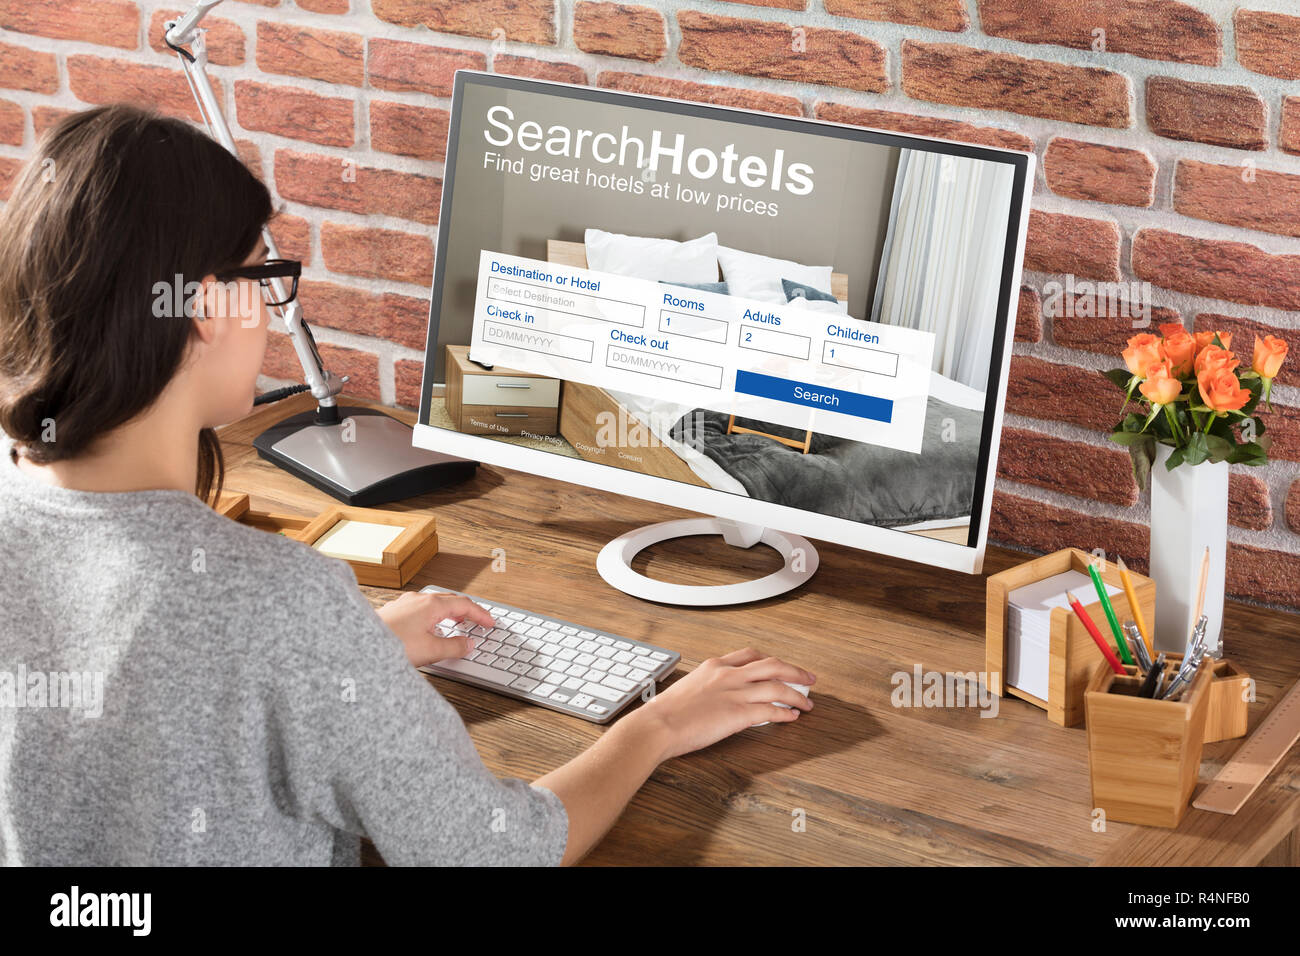 Woman Searching Hotels Online - Stock Image